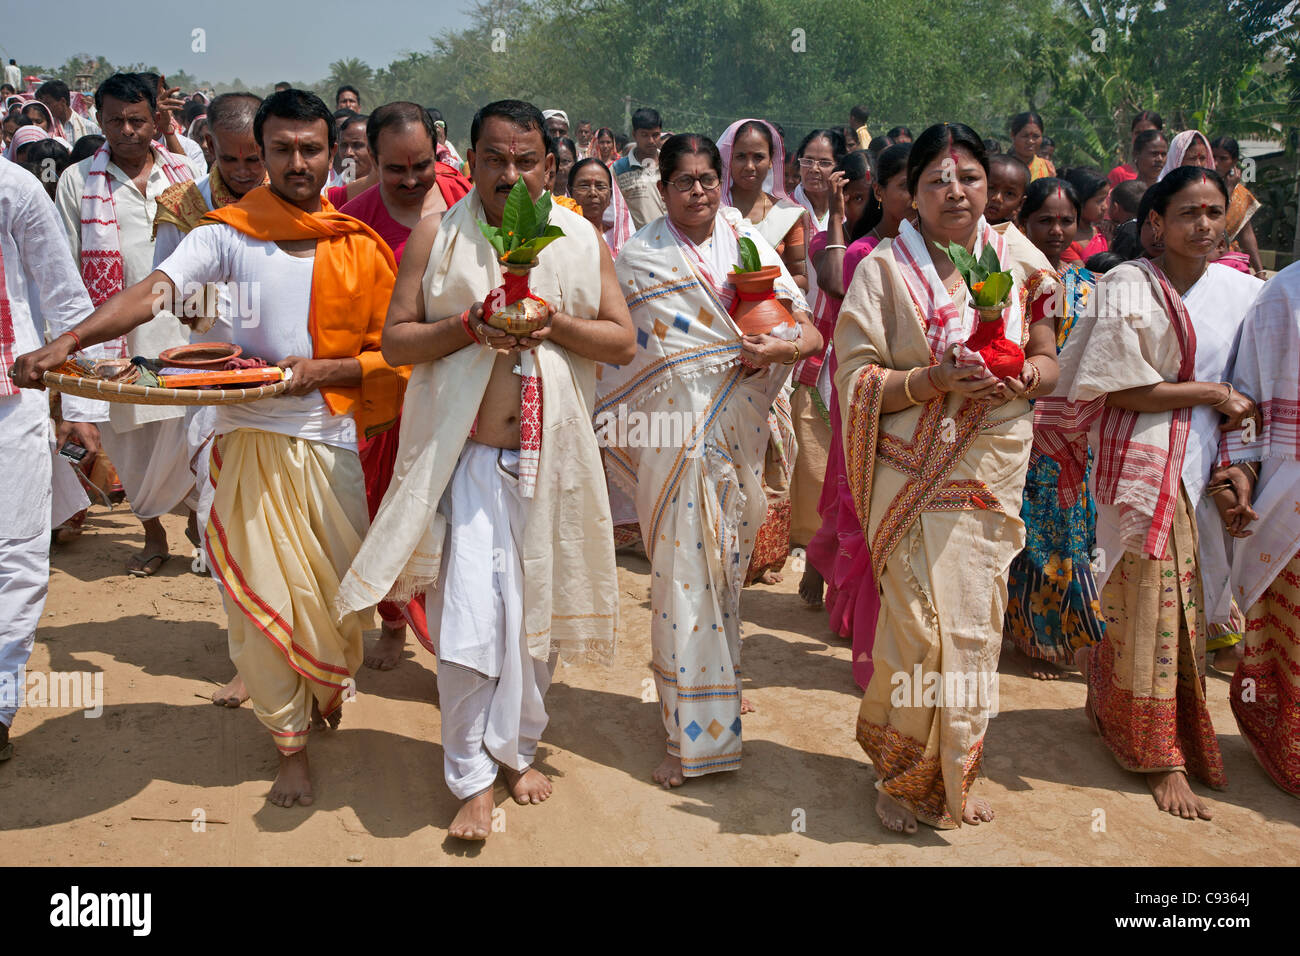 A Hindu religious procession to celebrate the opening of a new Shiva Temple at Raha, Nagoan. - Stock Image